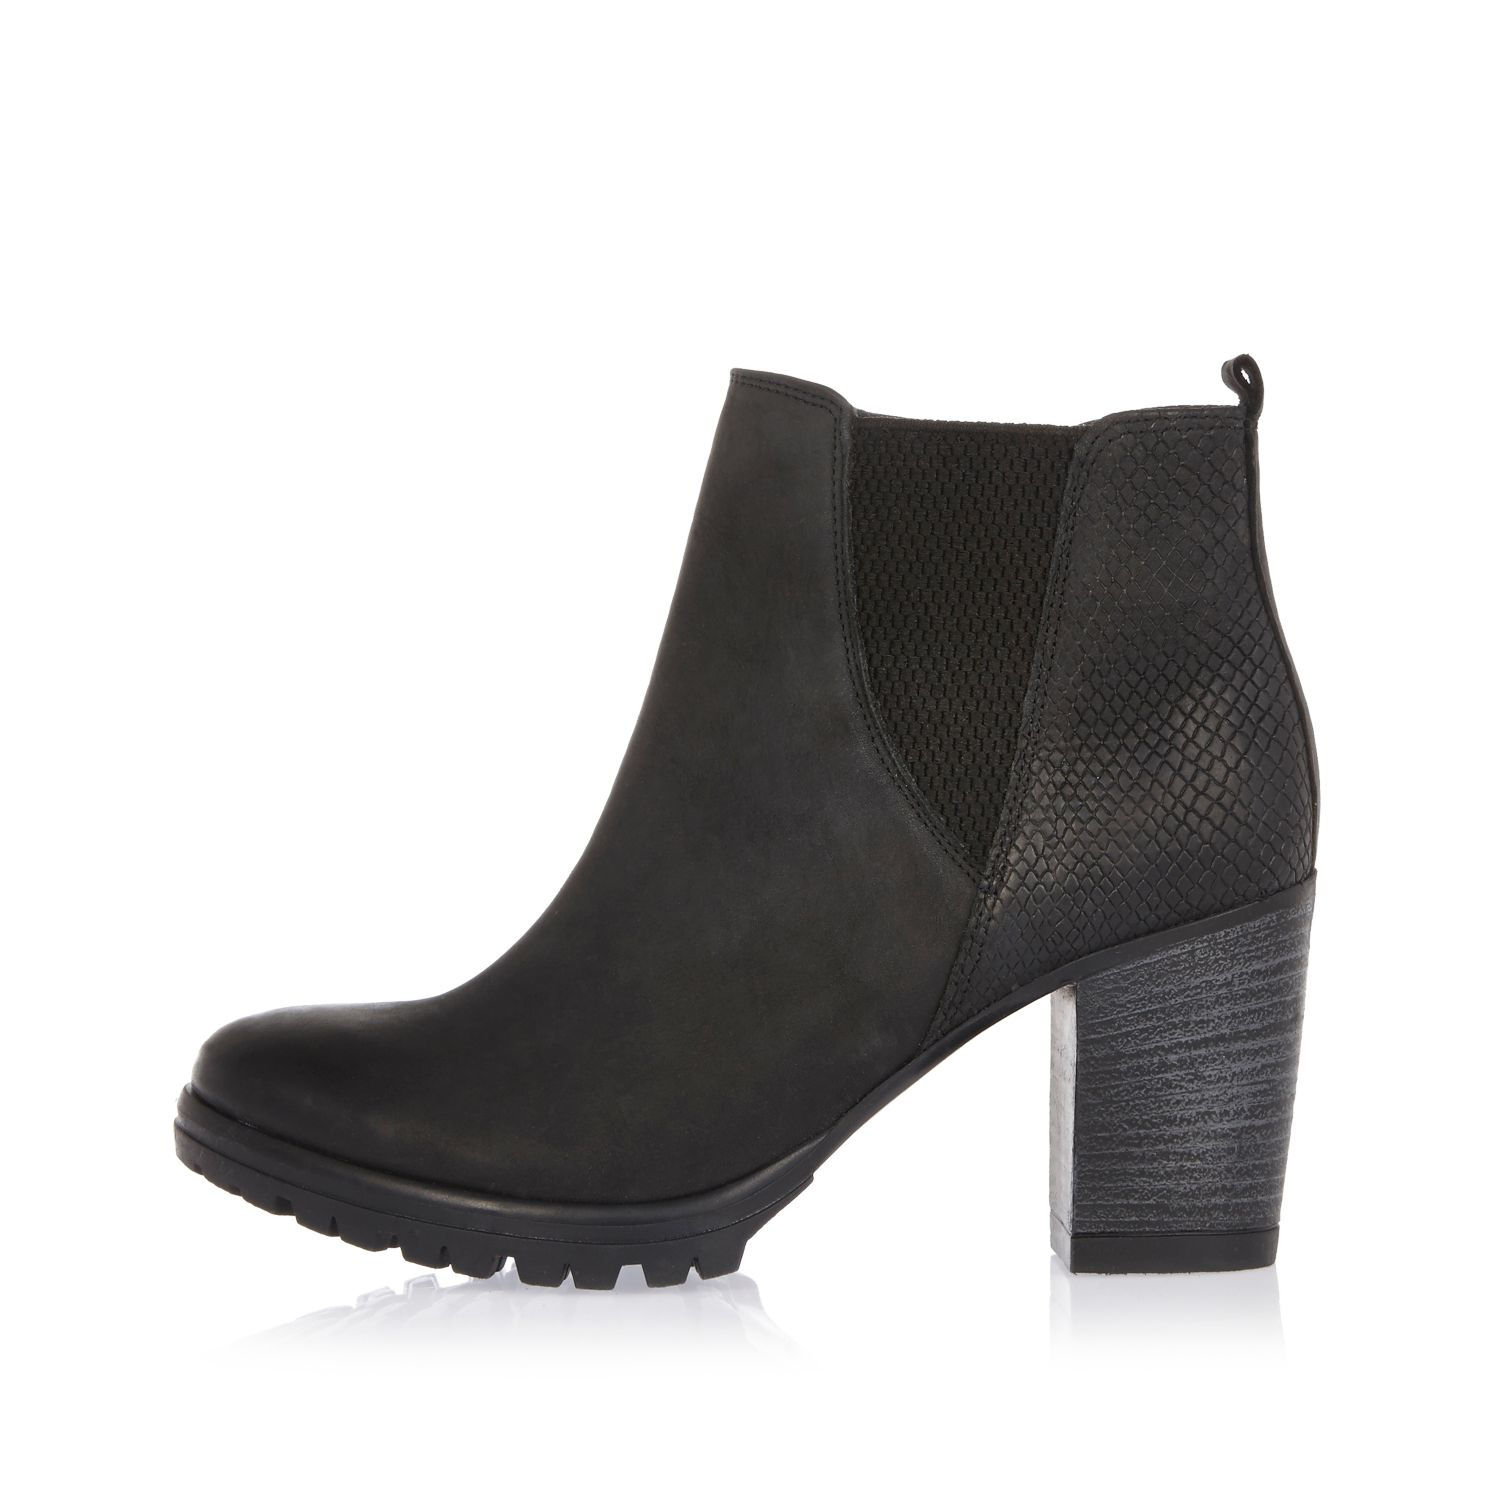 7c82bac2d484c9 river-island-black-black-nubuck-heeled-chelsea-boots -product-0-495403121-normal.jpeg